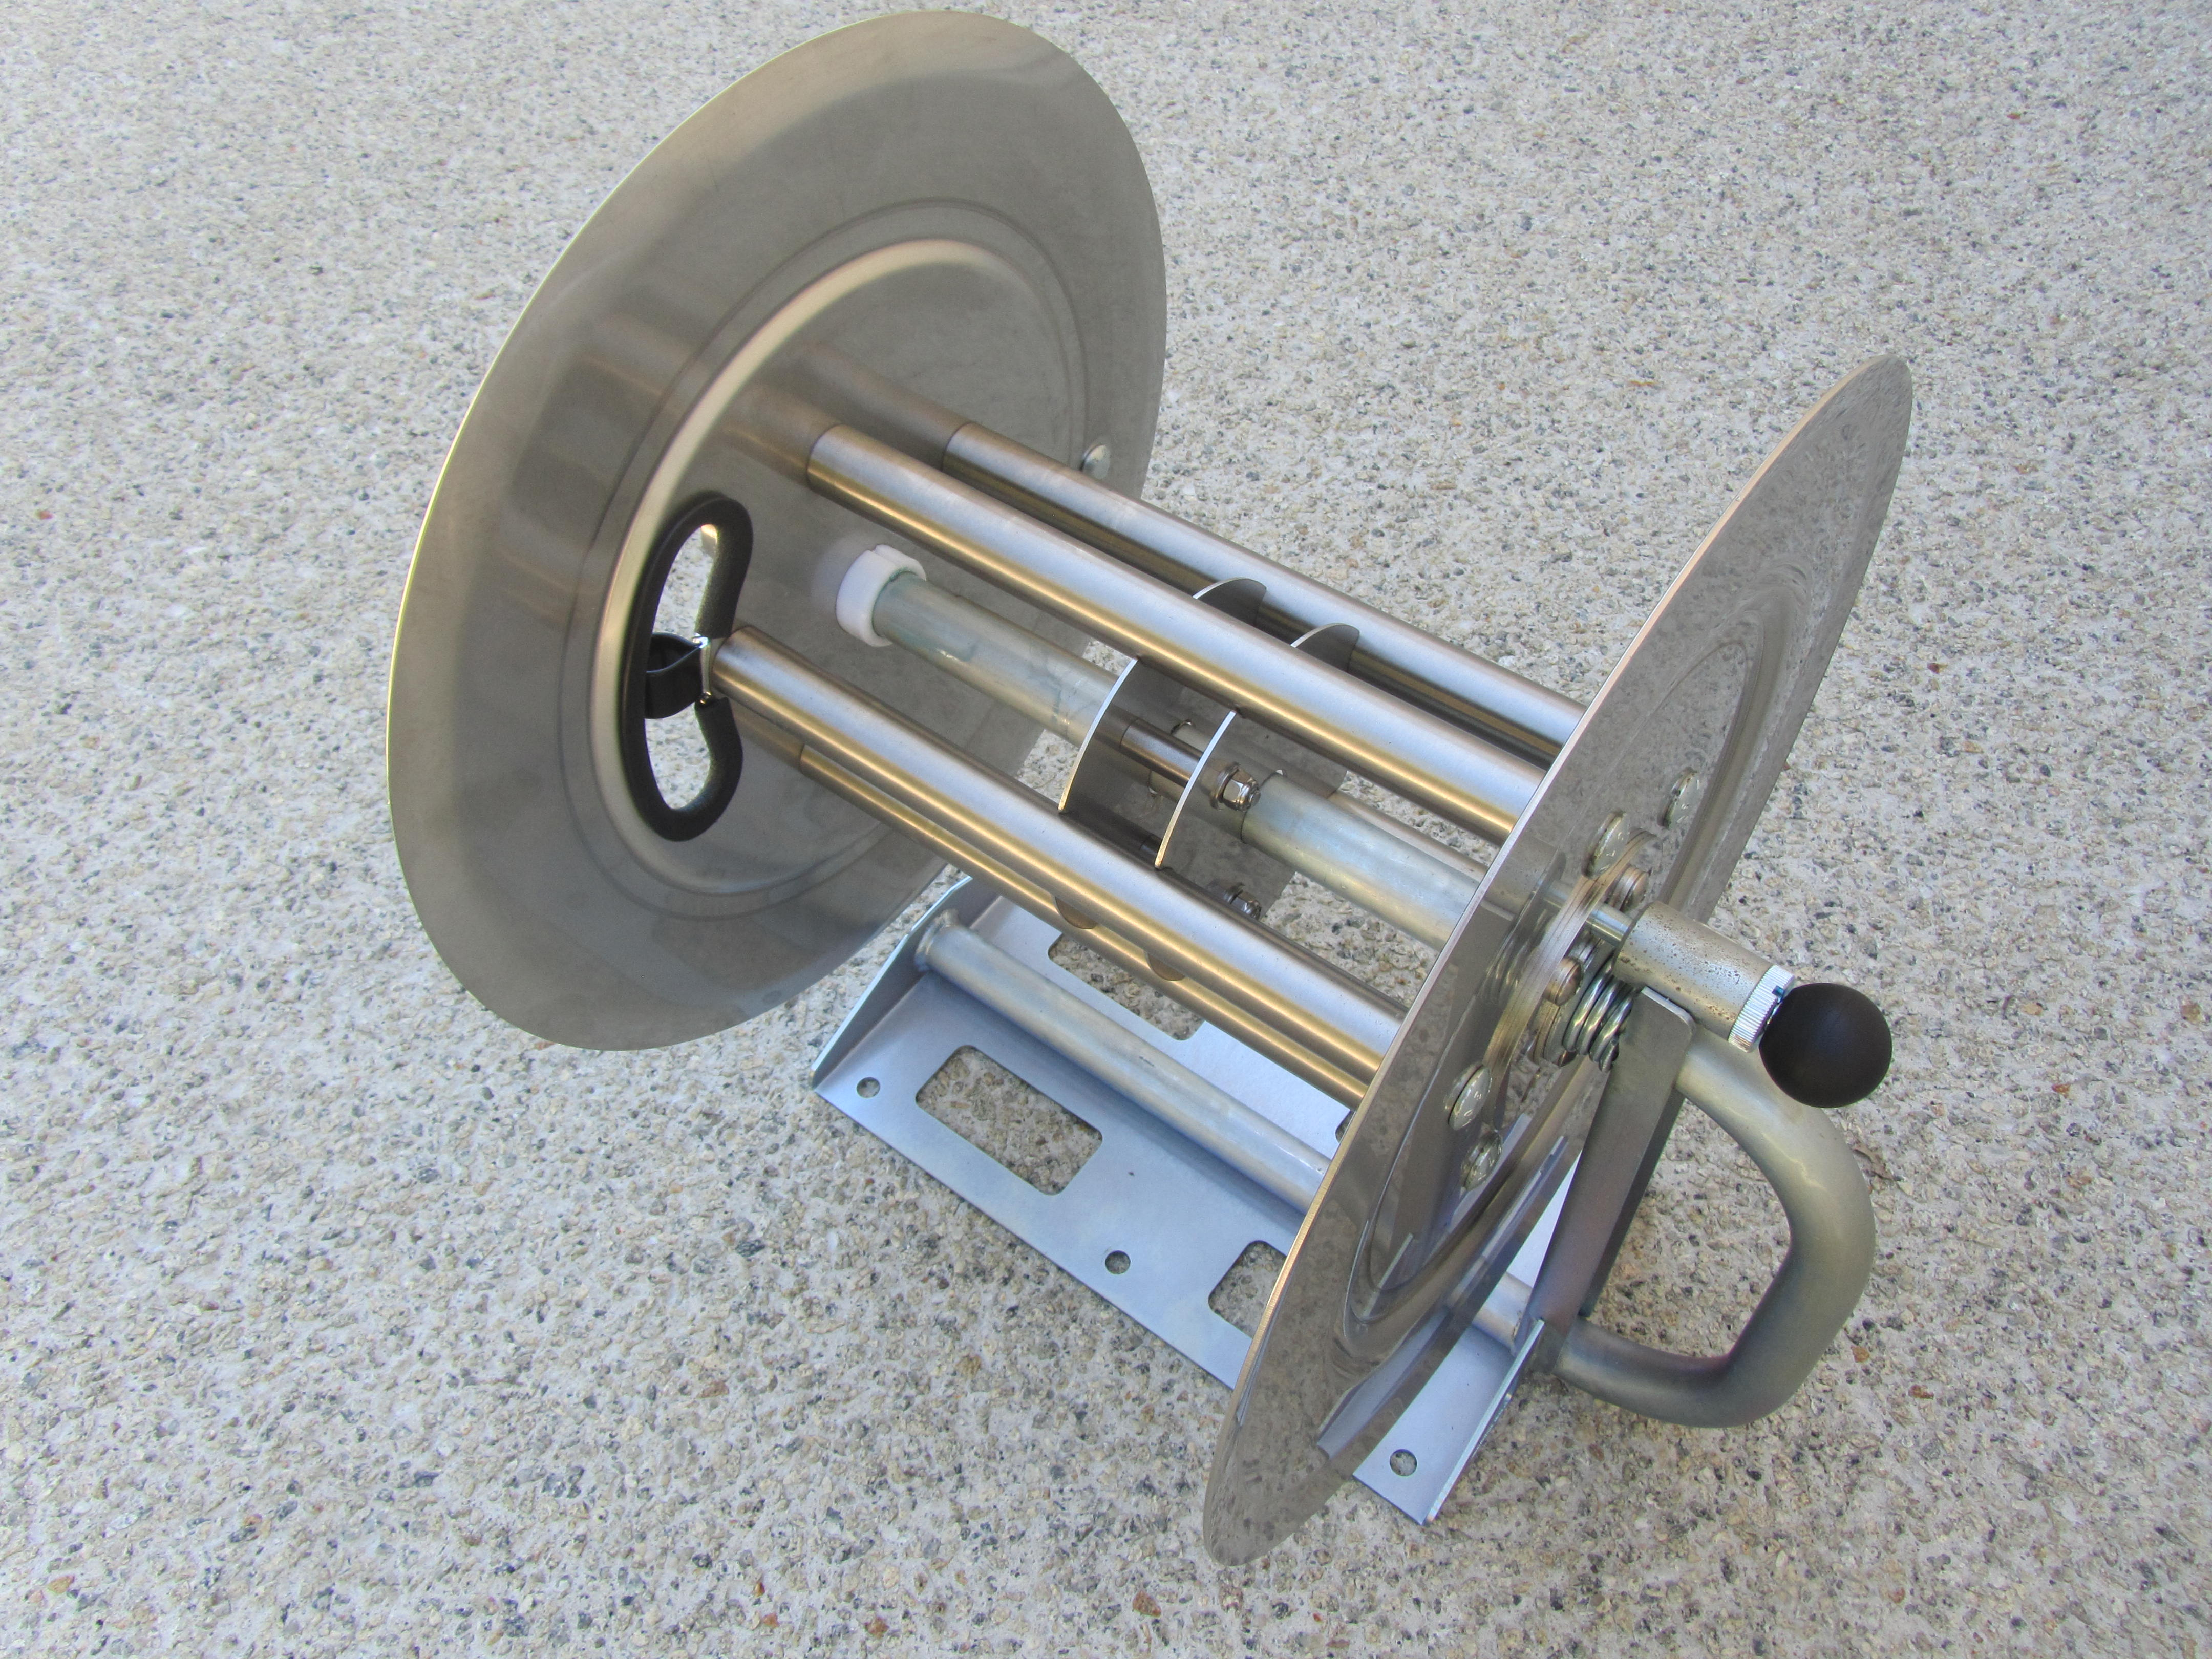 70 Metre Stainless Steel Hand Crank Pressure Washer Hose Reel (Made in USA)